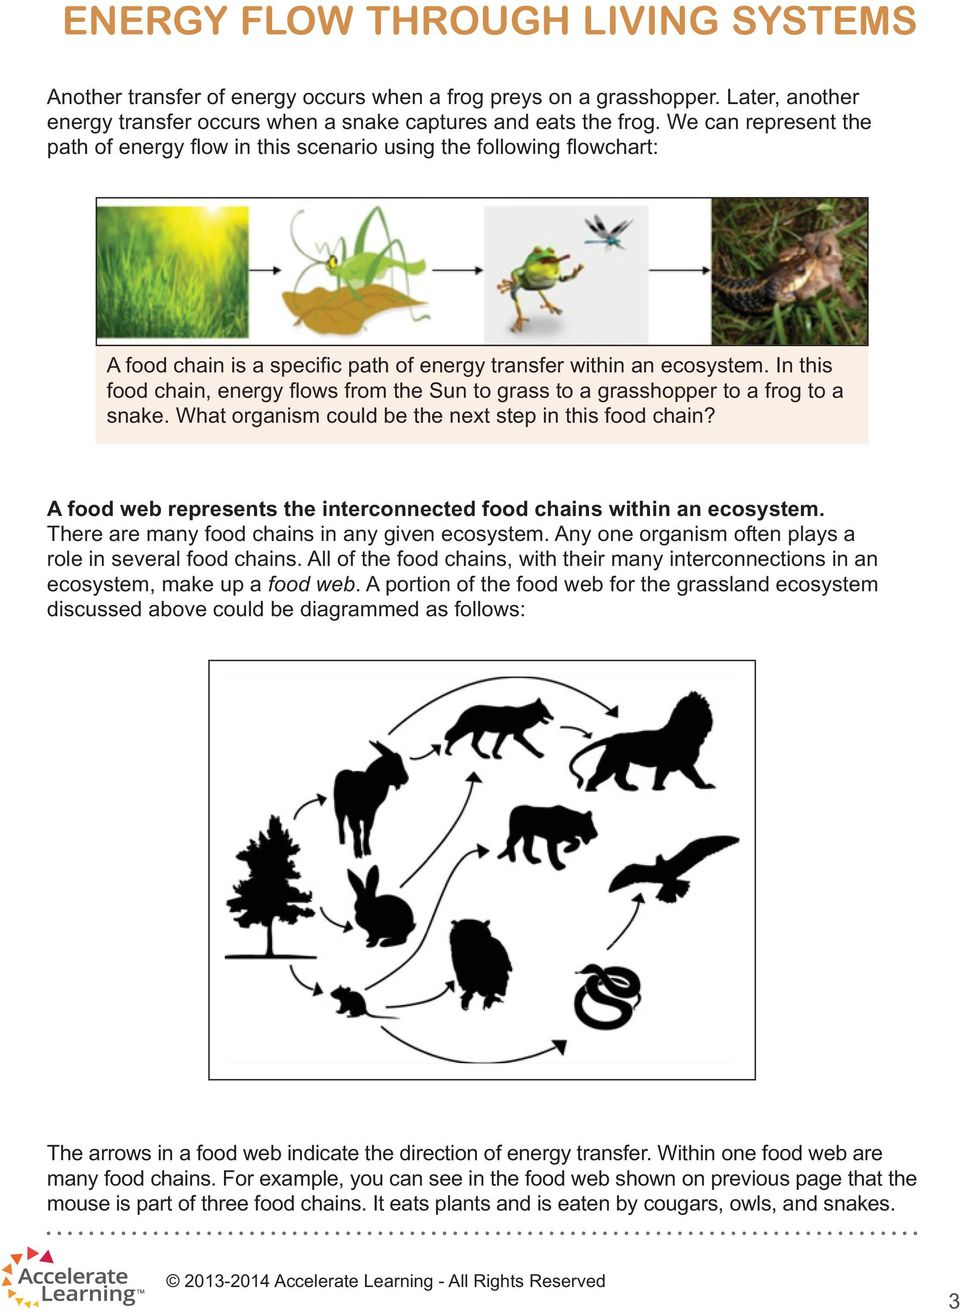 In this food chain, energy fl ows from the Sun to grass to a grasshopper to a frog to a snake. What organism could be the next step in this food chain?